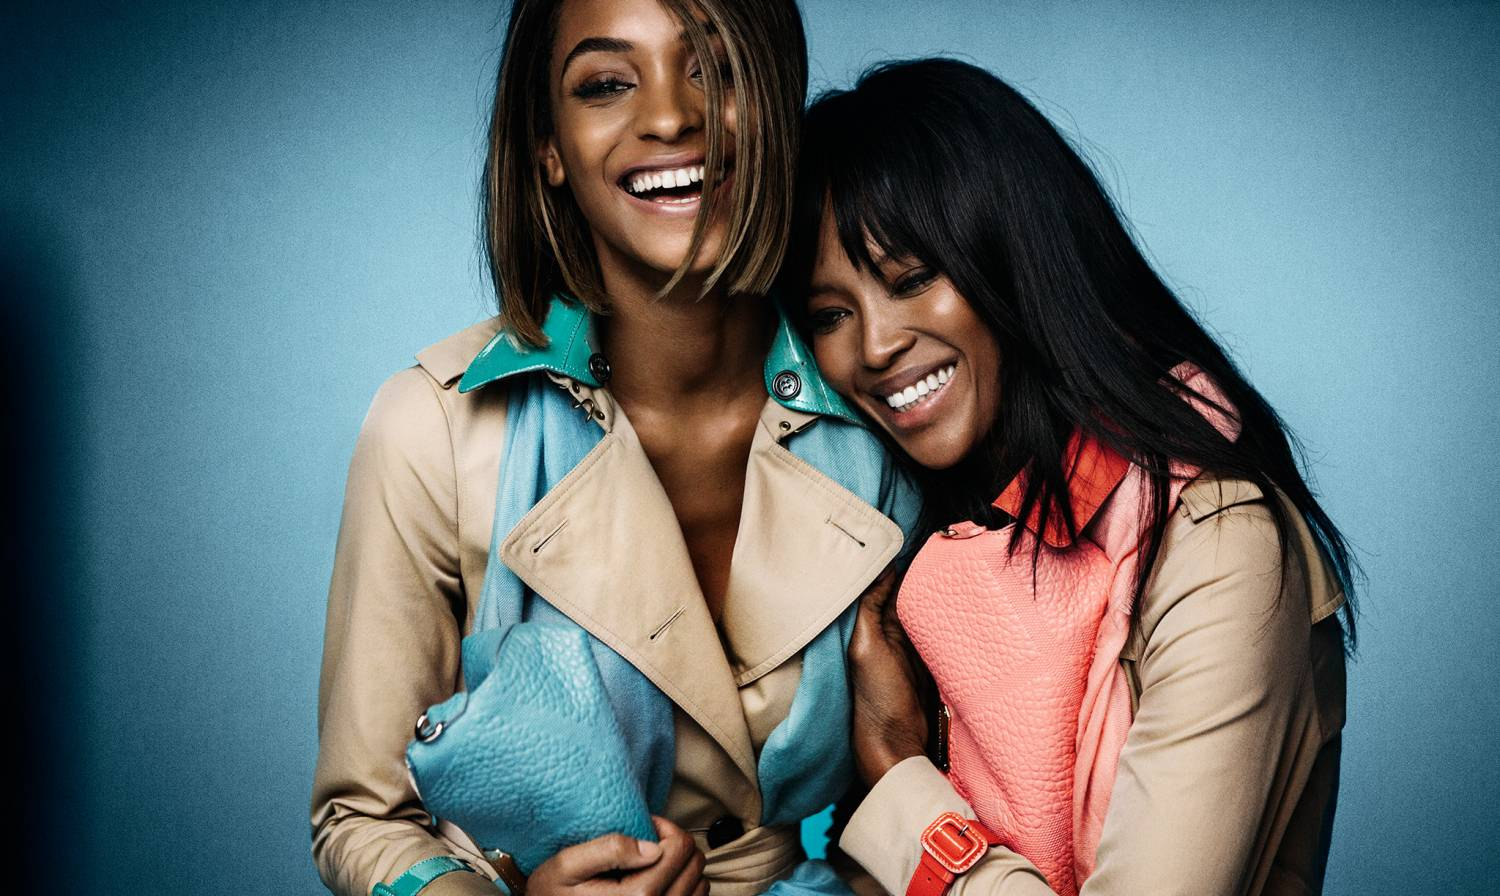 Музыка и видеоролик из рекламы Burberry - Spring-Summer 2015 (Naomi Campbell, Jourdan Dunn)